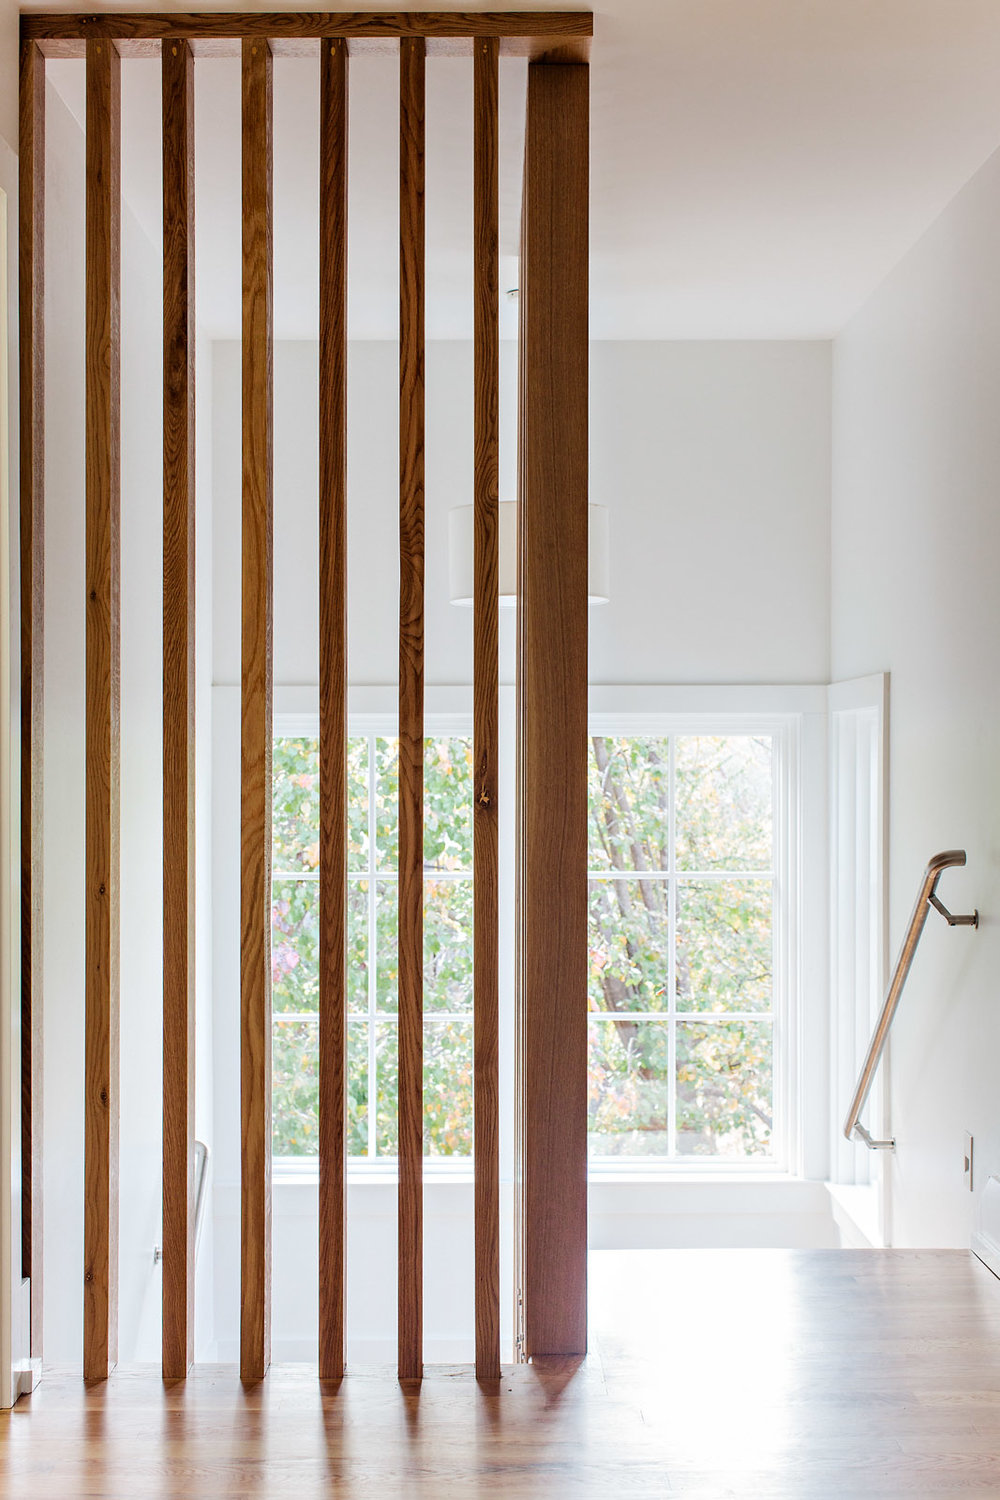 Details of staircase and divider of Pathasema House (Homewood, AL) #architecture #interiors